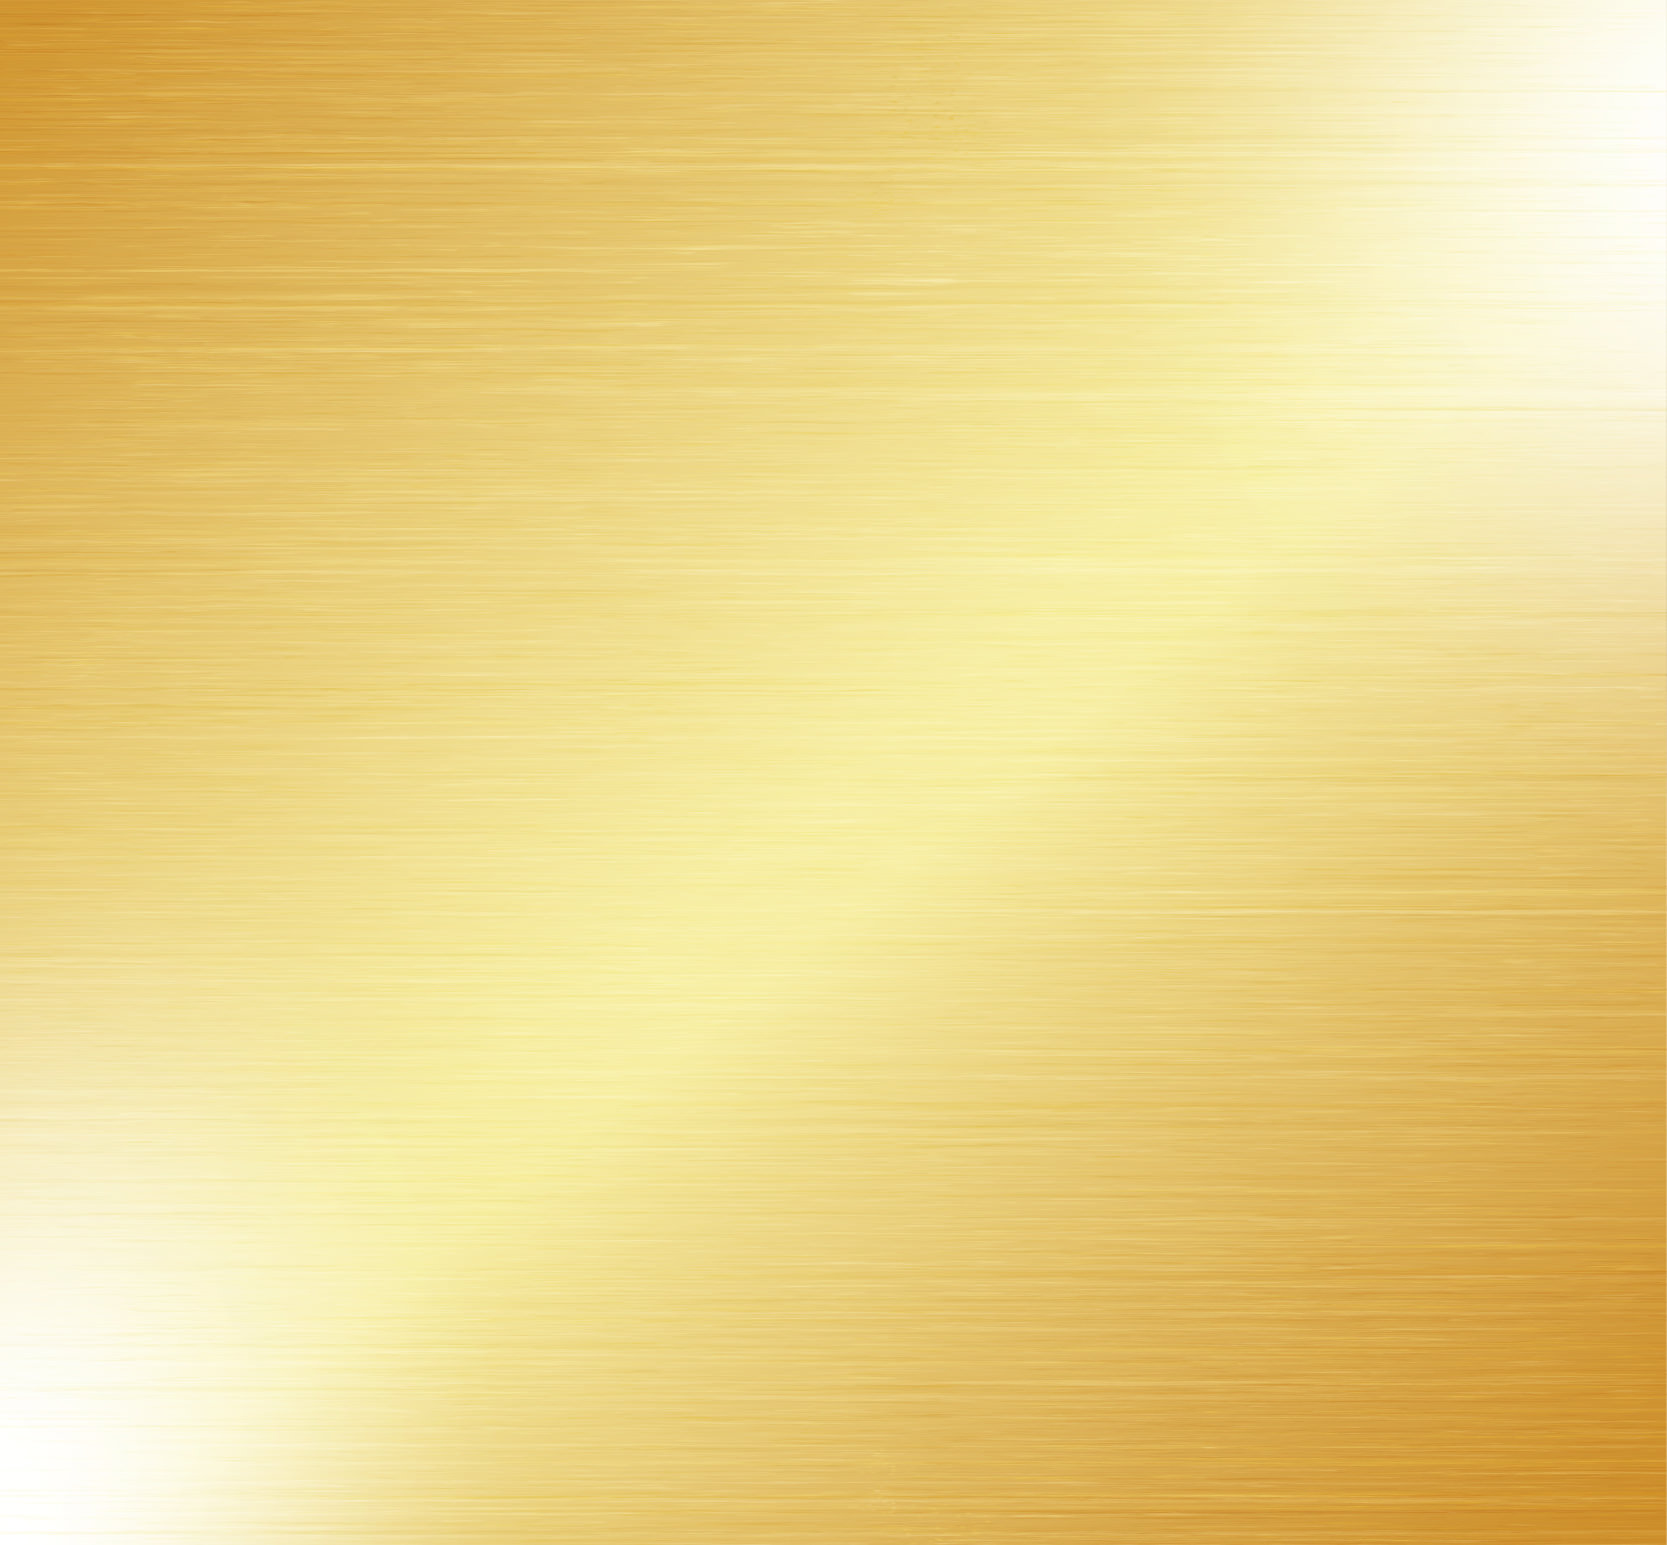 Brushed Gold Background